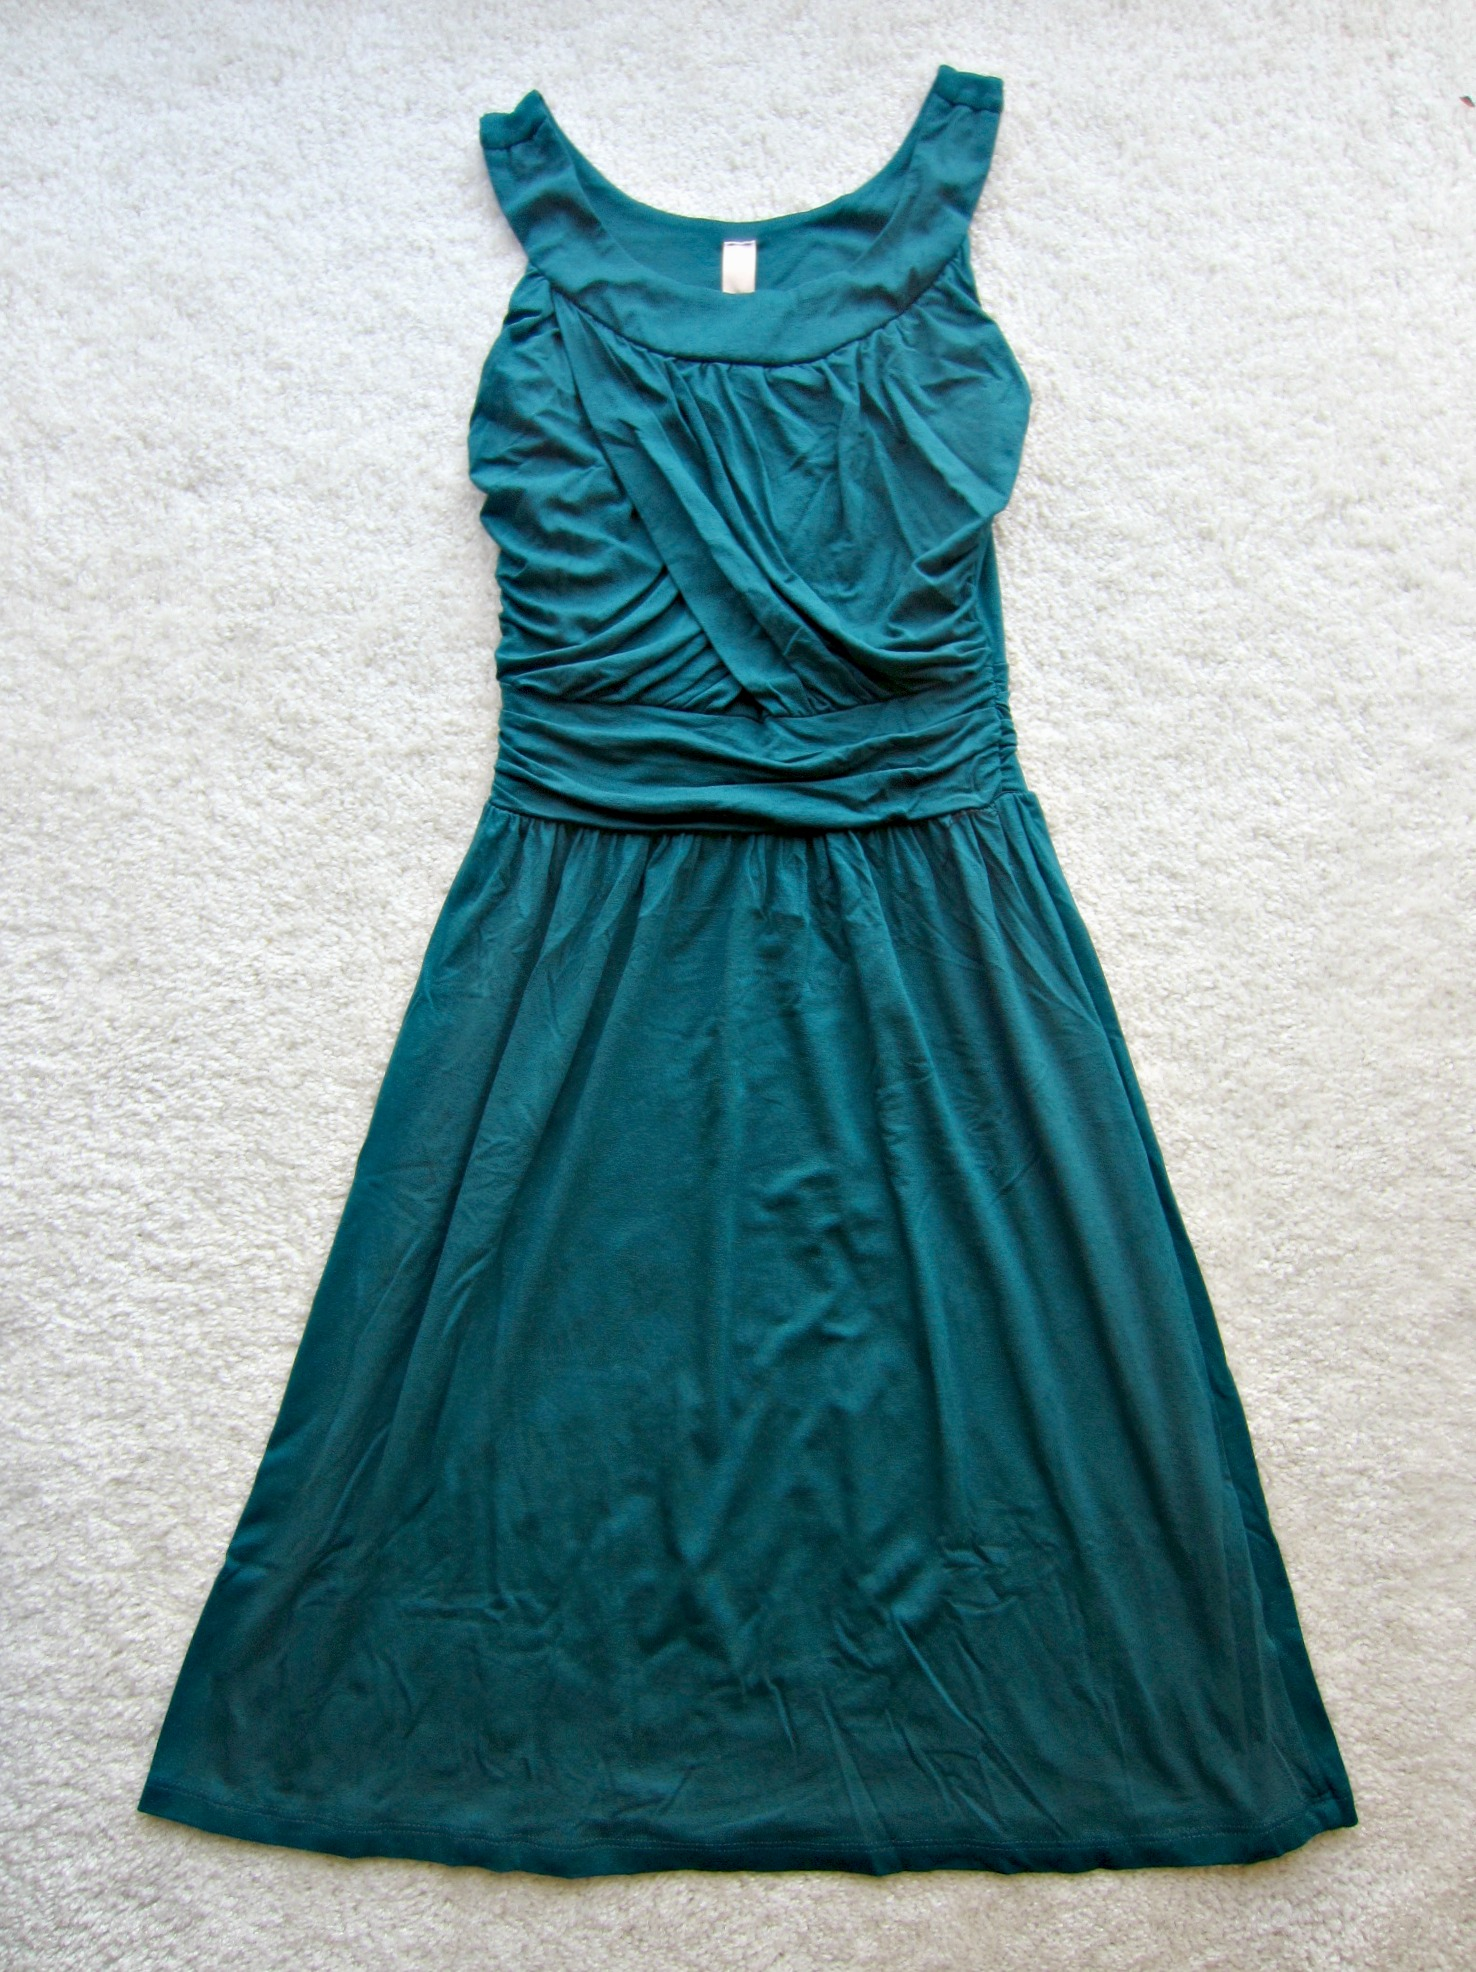 stitch fix gilli gillian sleeveless dress dark green